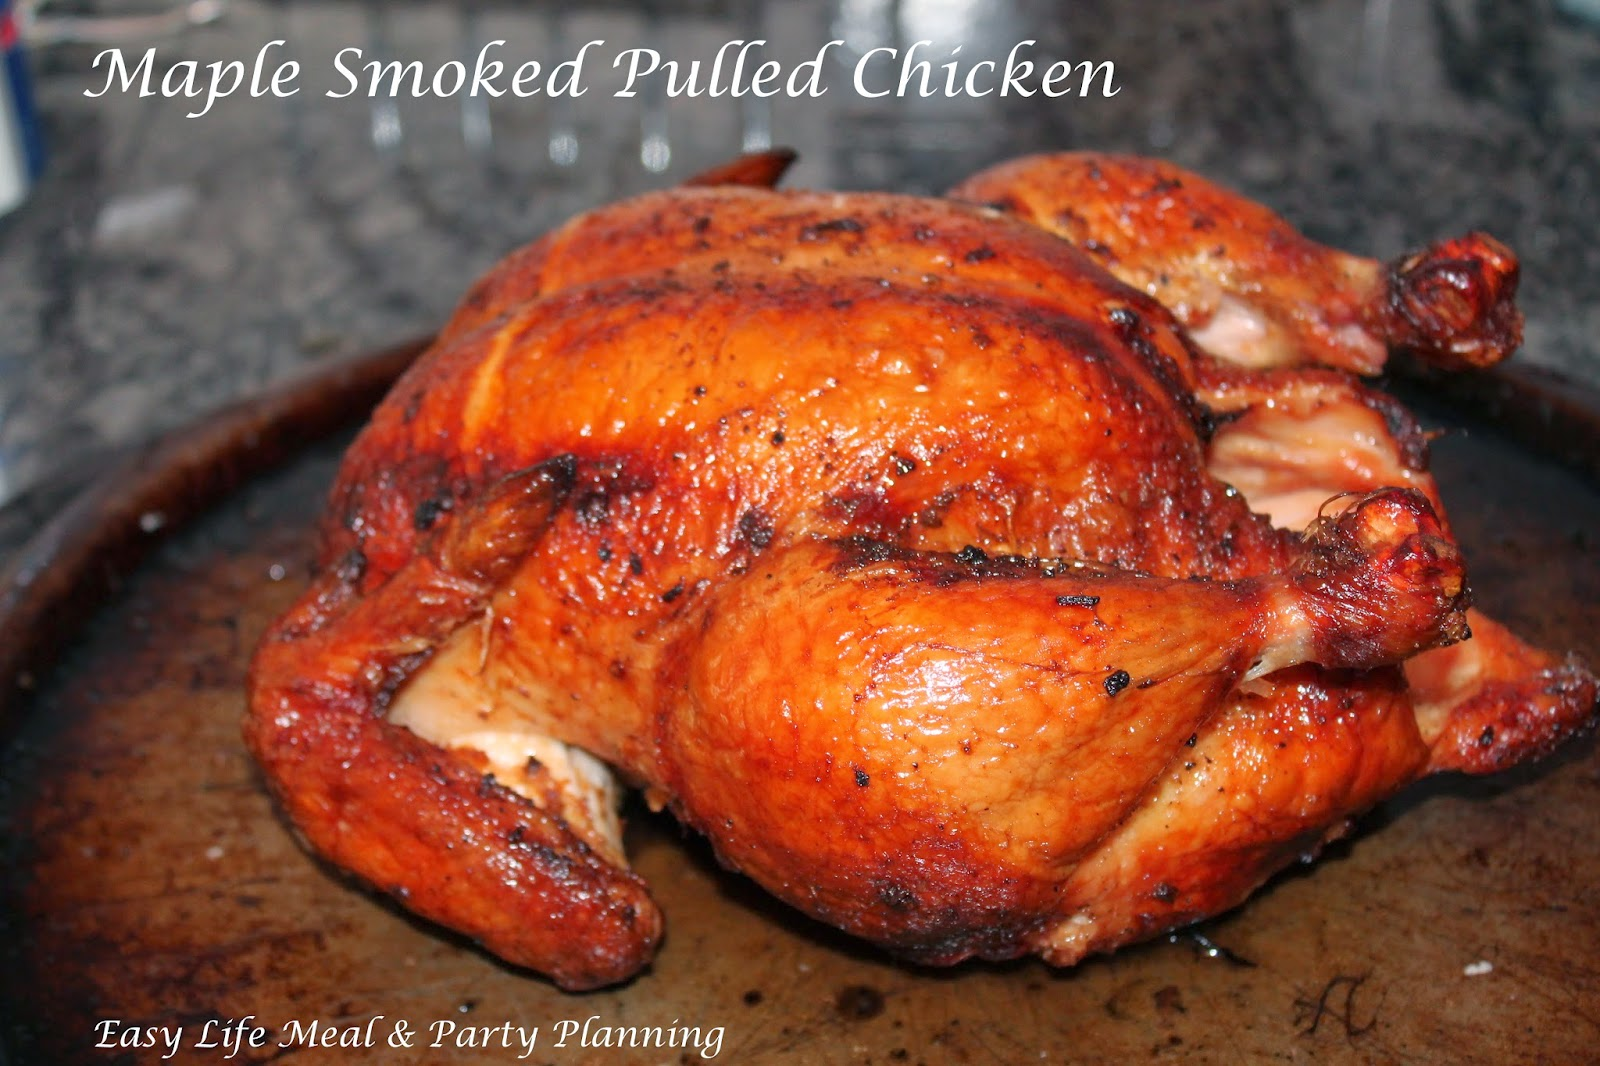 Maple Smoked Pulled Chicken - Easy Life Meal & Party Planning - Maple Smoked Pulled Chicken - Easy Life Meal & Party Planning - maple, hone & barbecue sauce flavors melded together into the juiciest chicken you will ever taste!